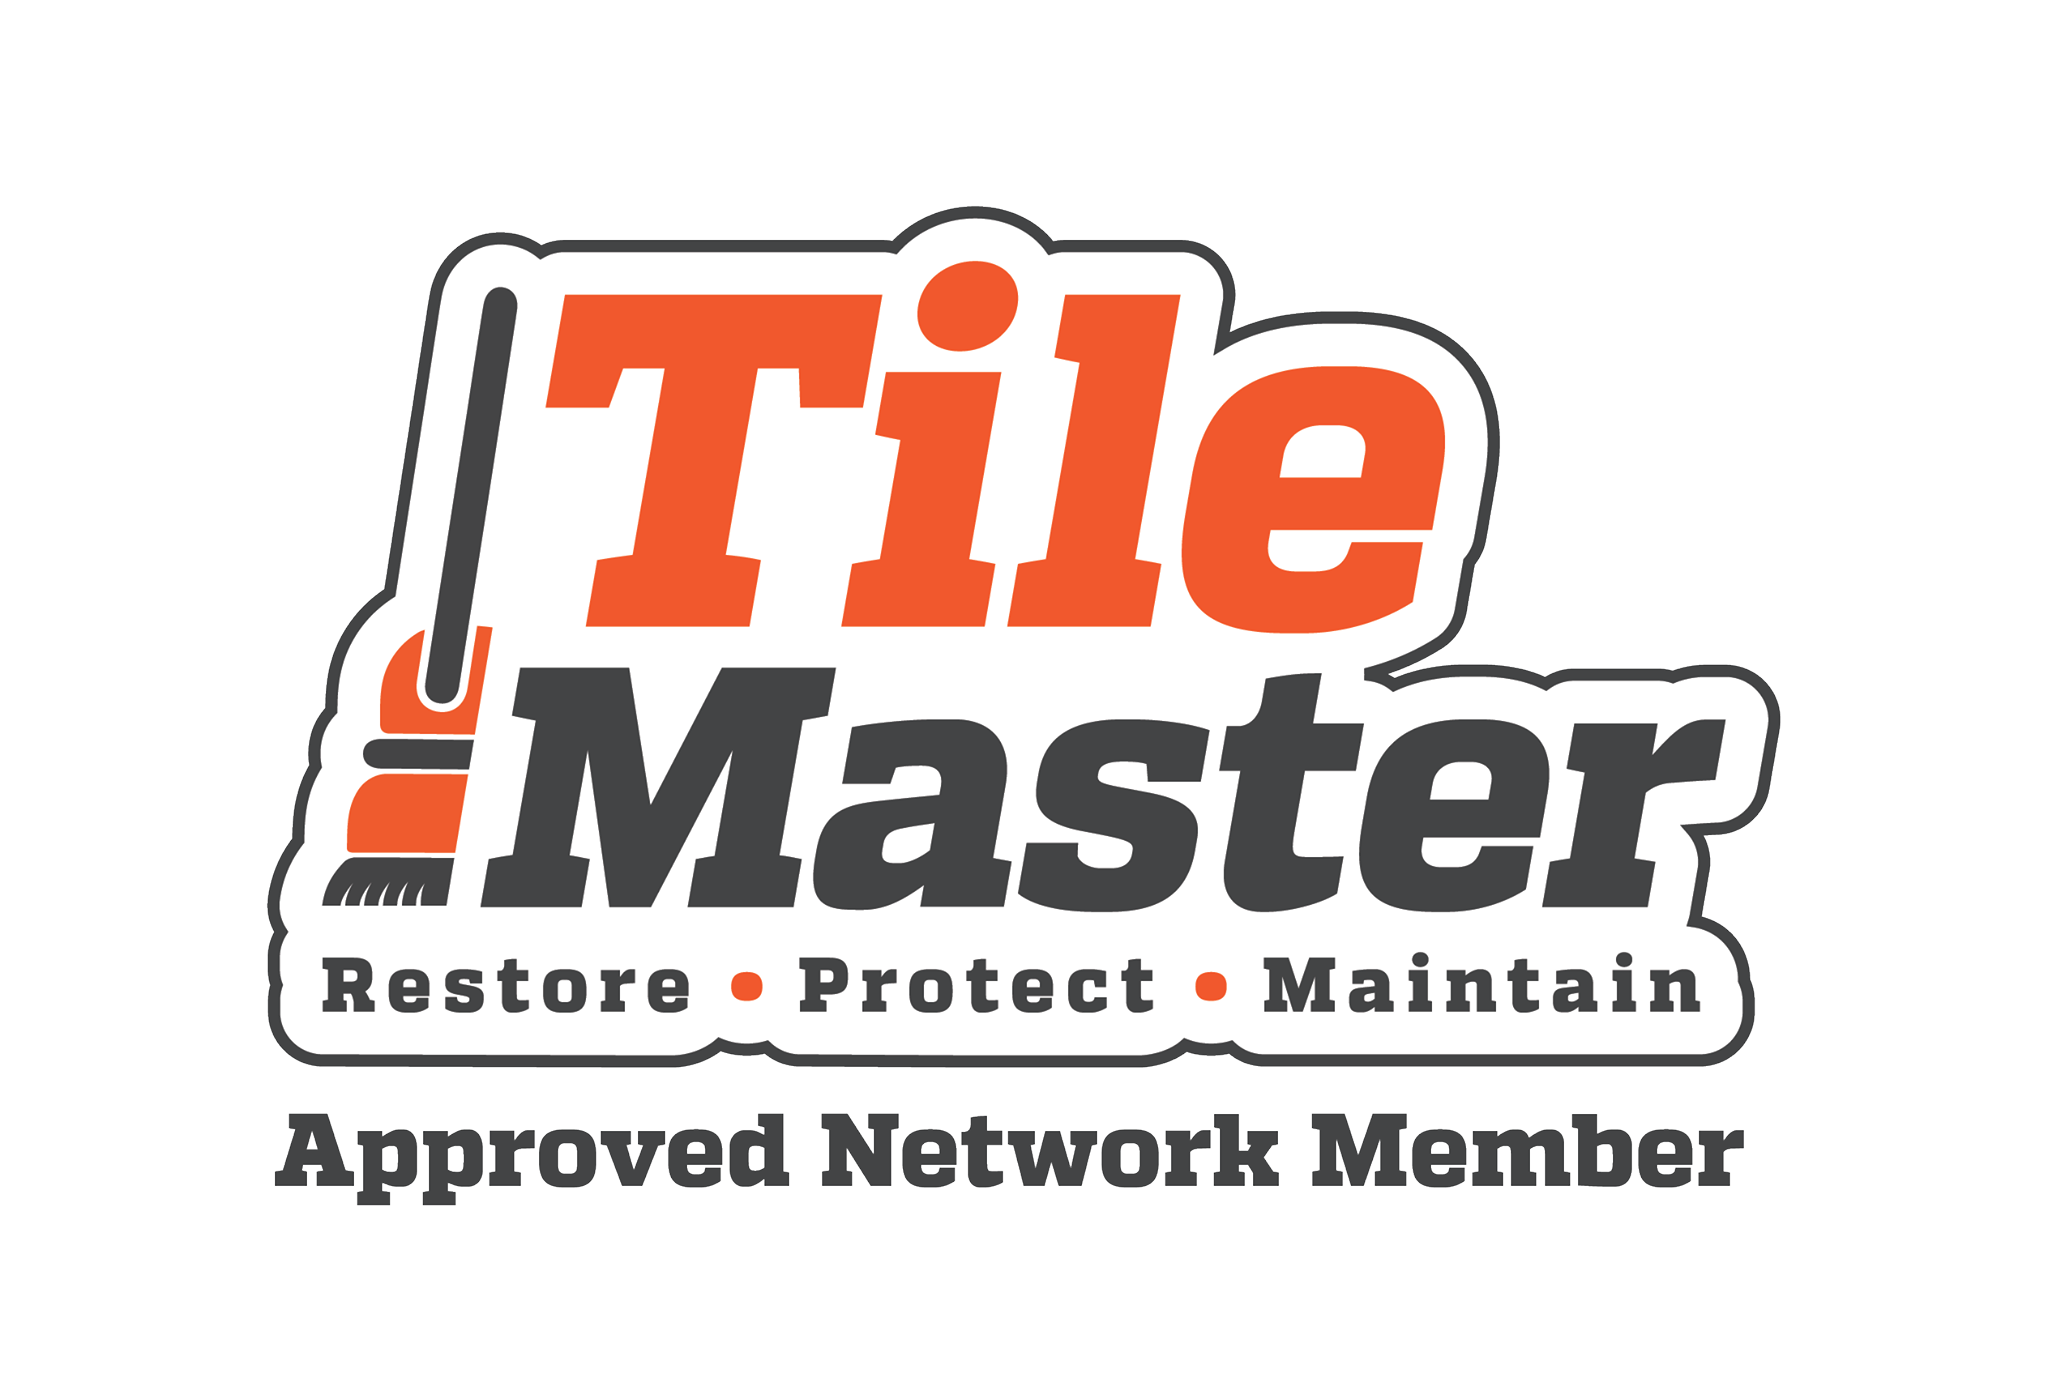 TileMaster Approved Network Member